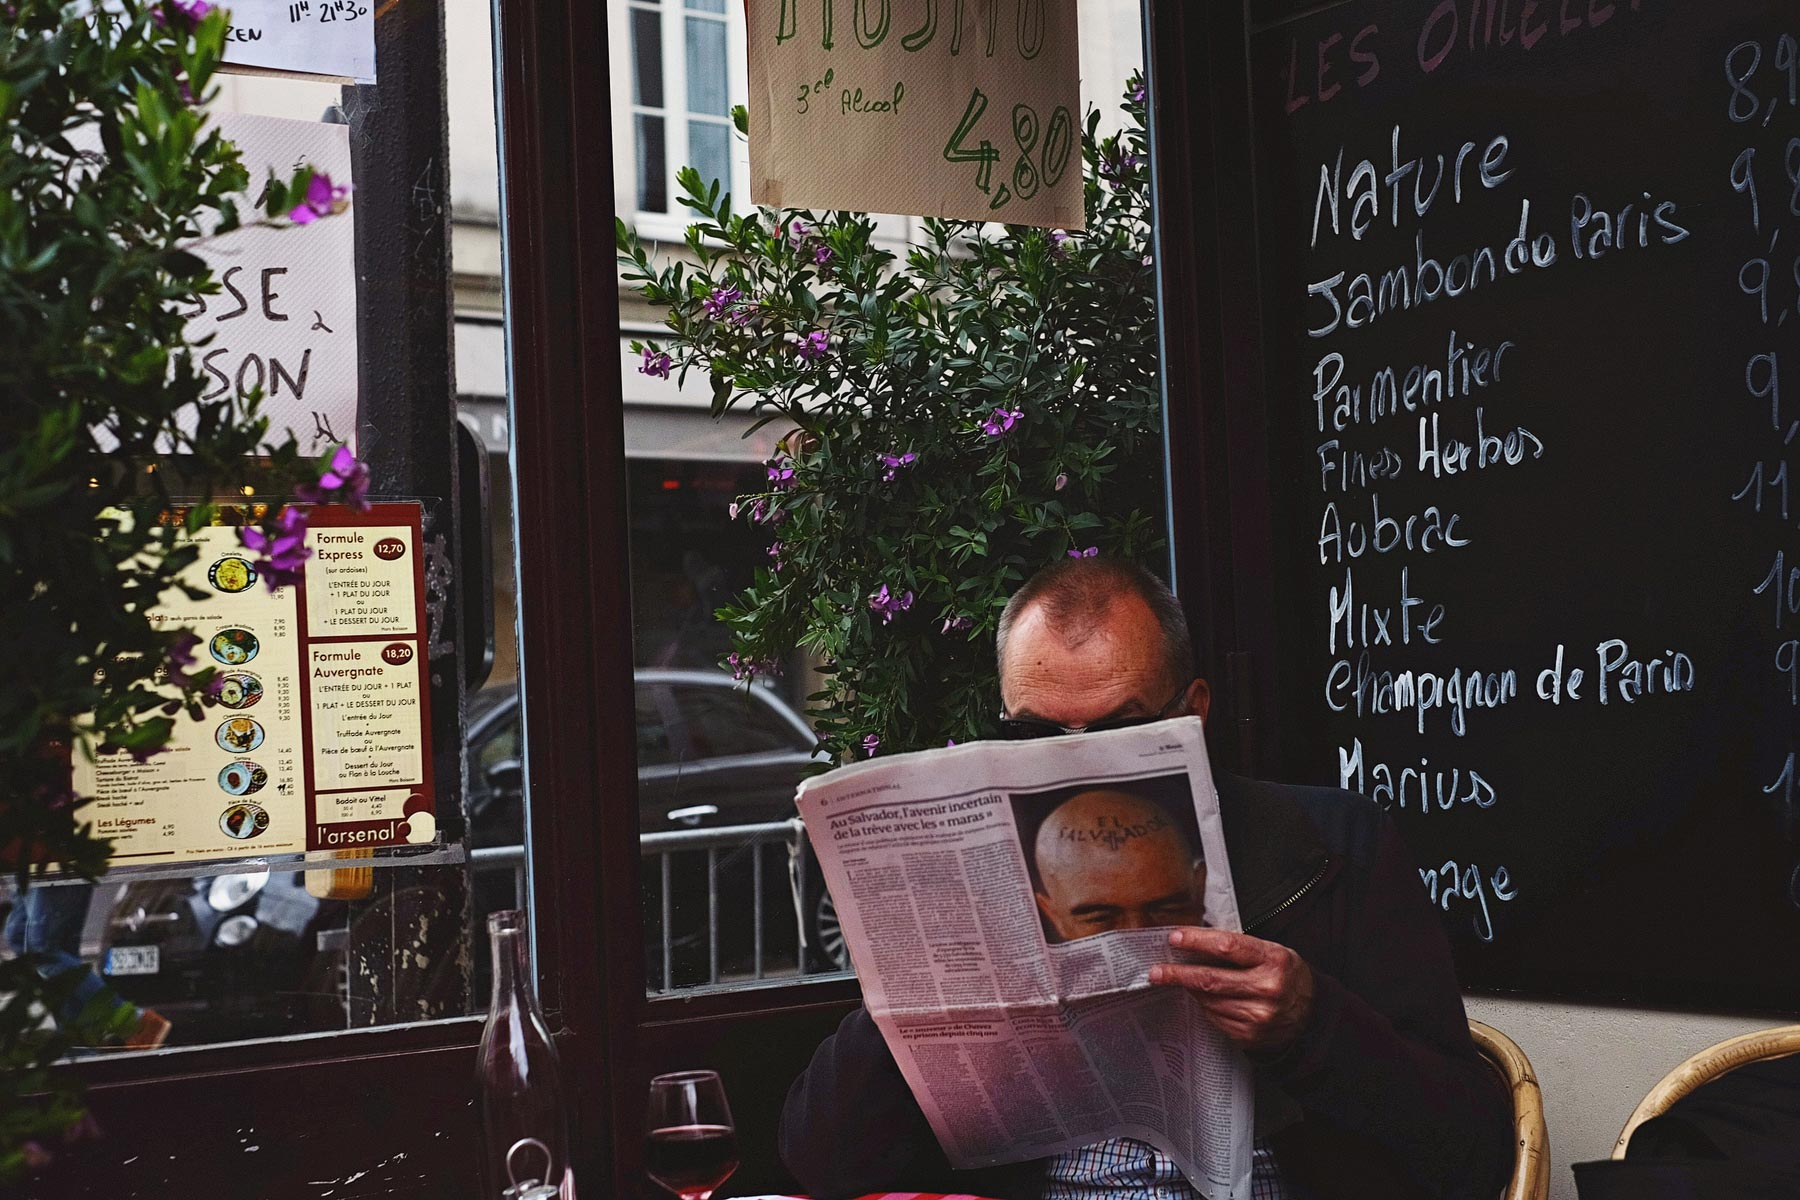 Paris Street Photography with The Fuji X-T1